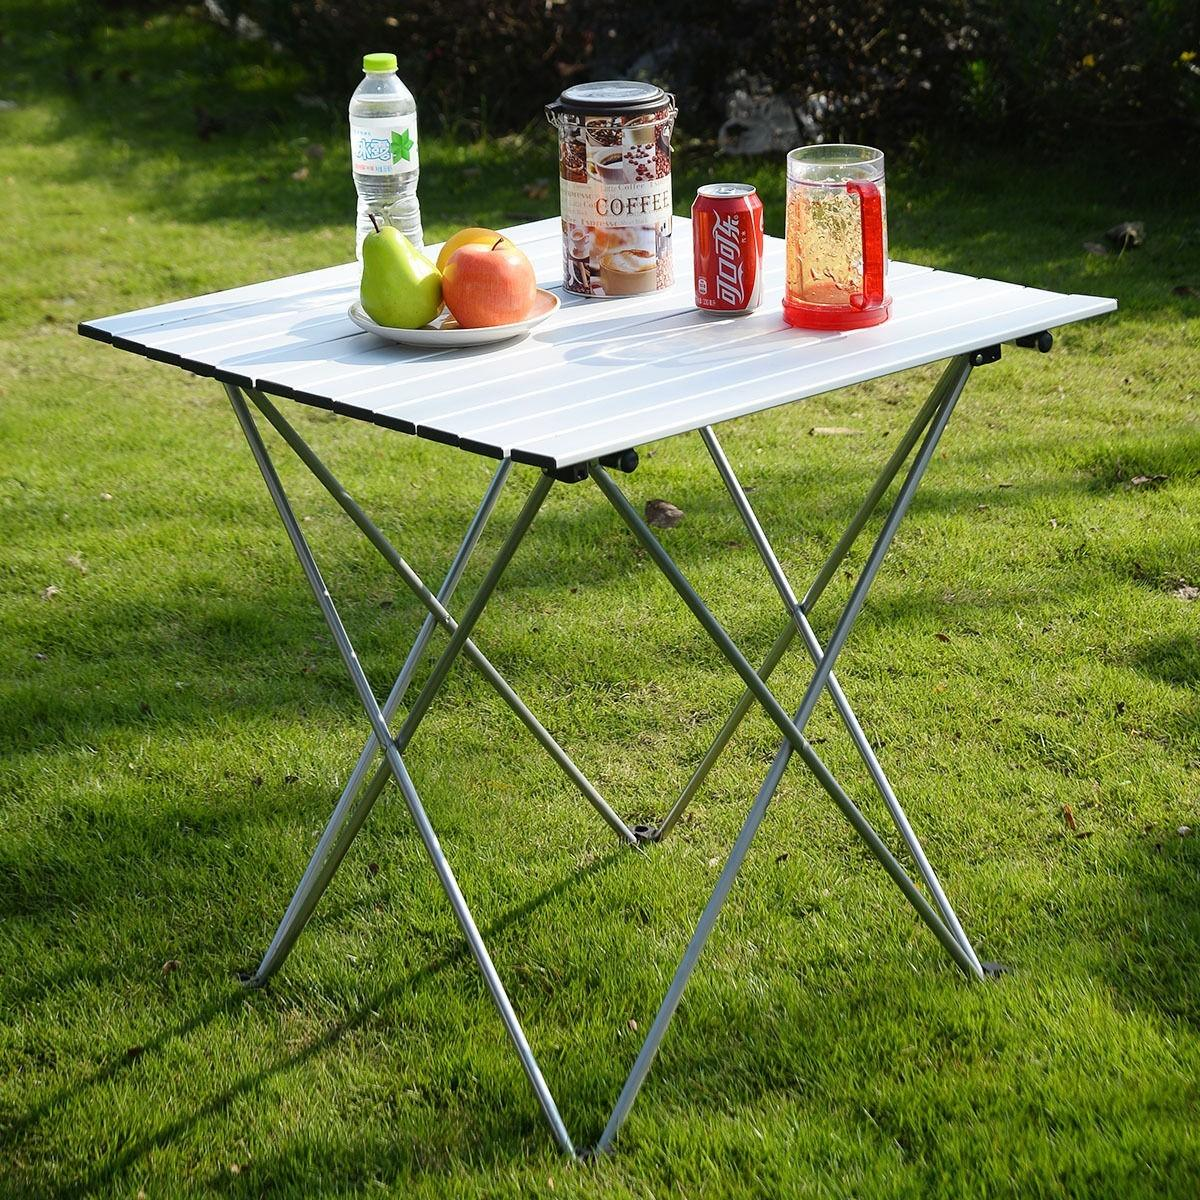 Aluminum Roll Table Folding Camping Outdoor Indoor